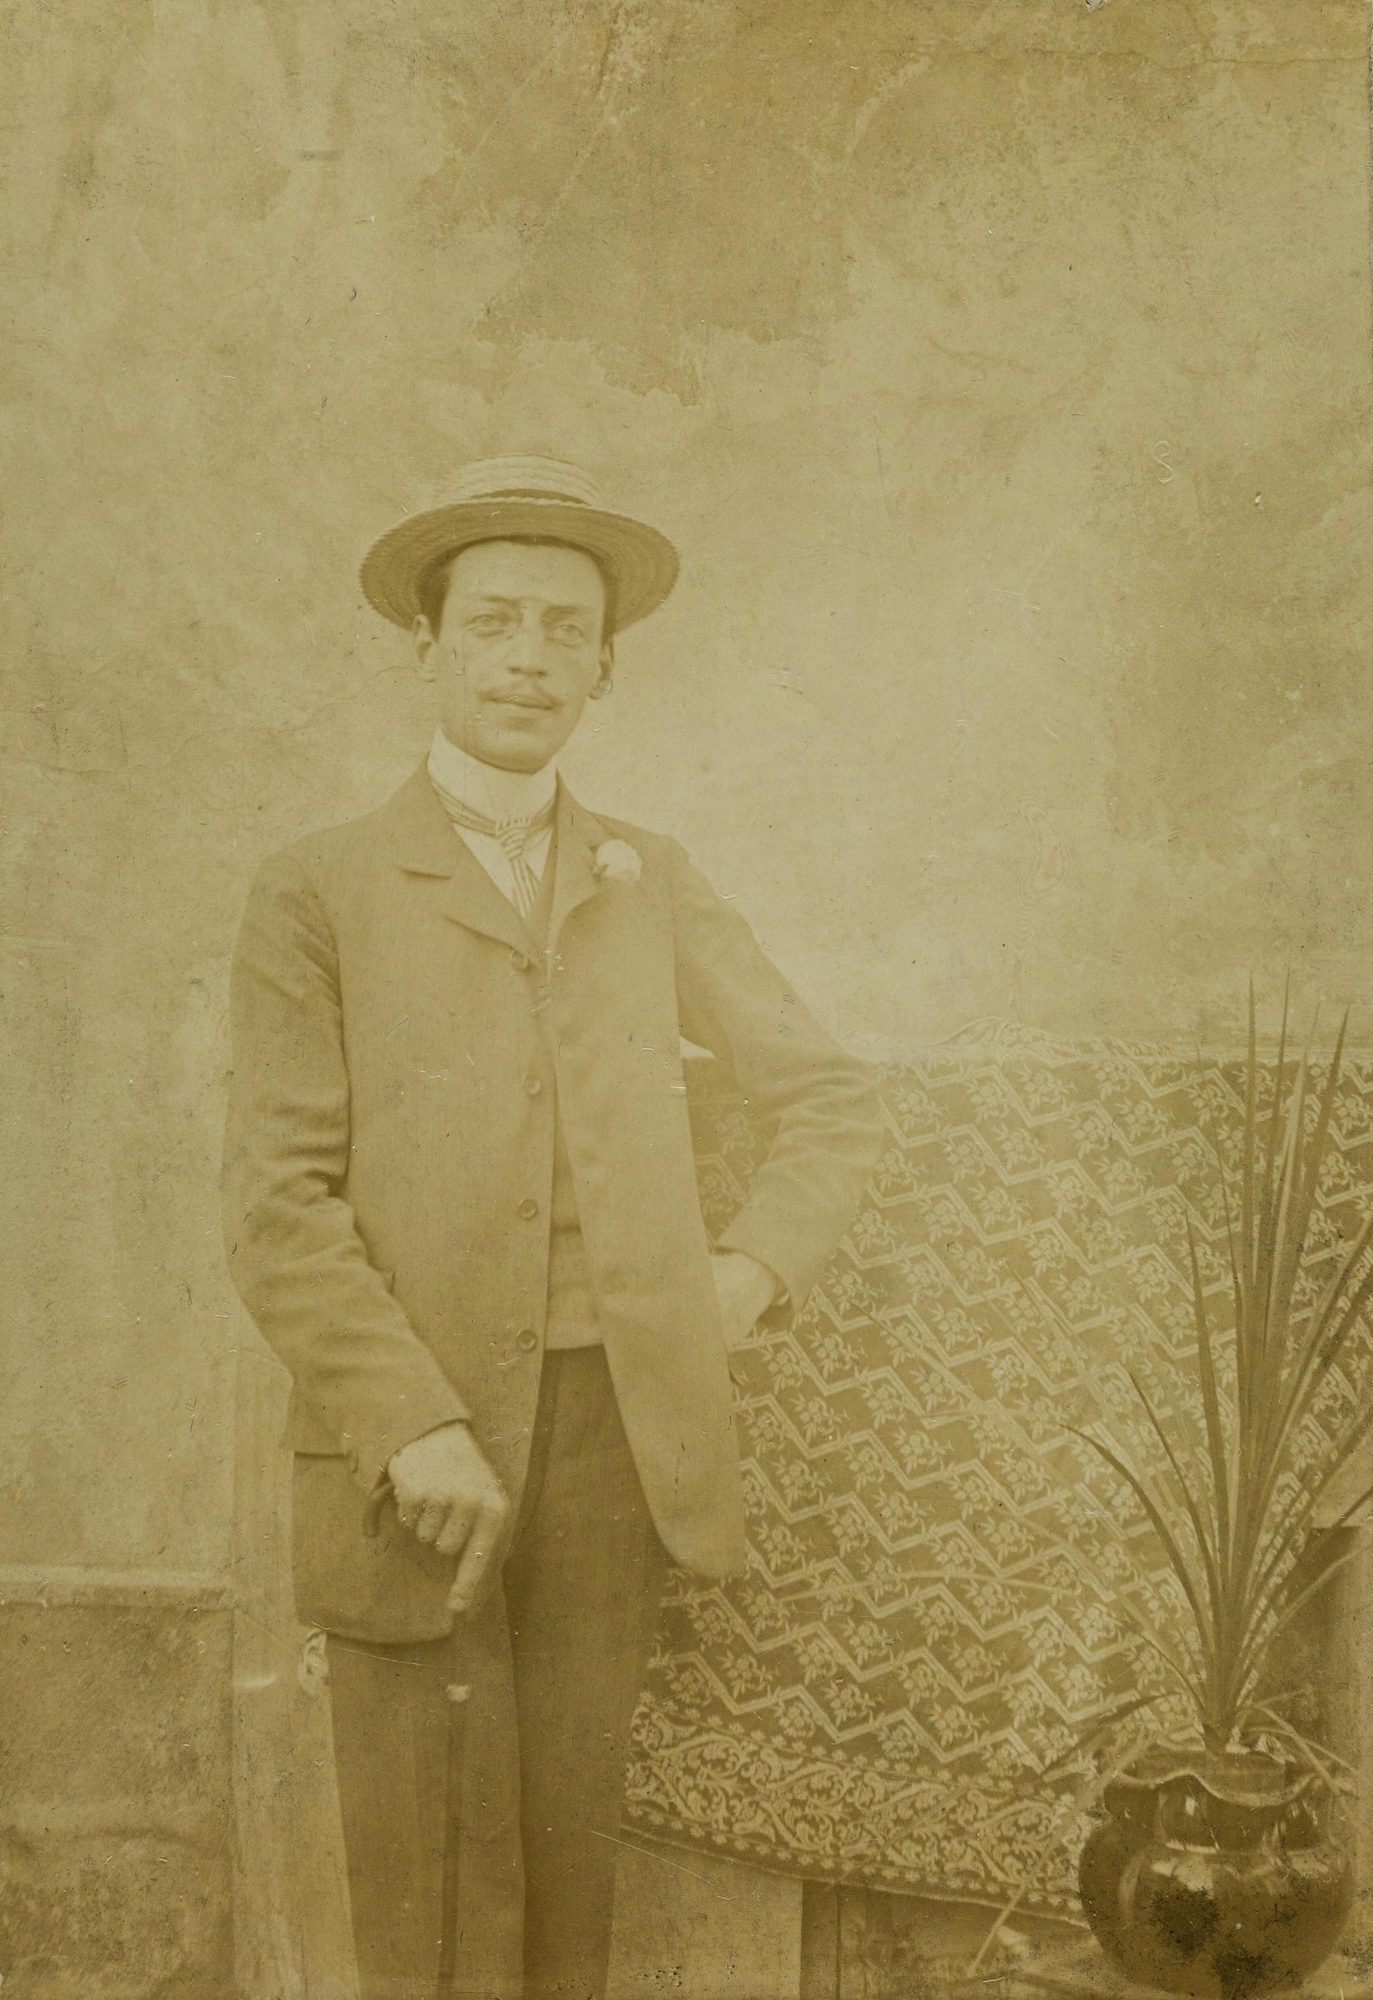 Photograph of Melanie's brother Emmanuel, around 1900